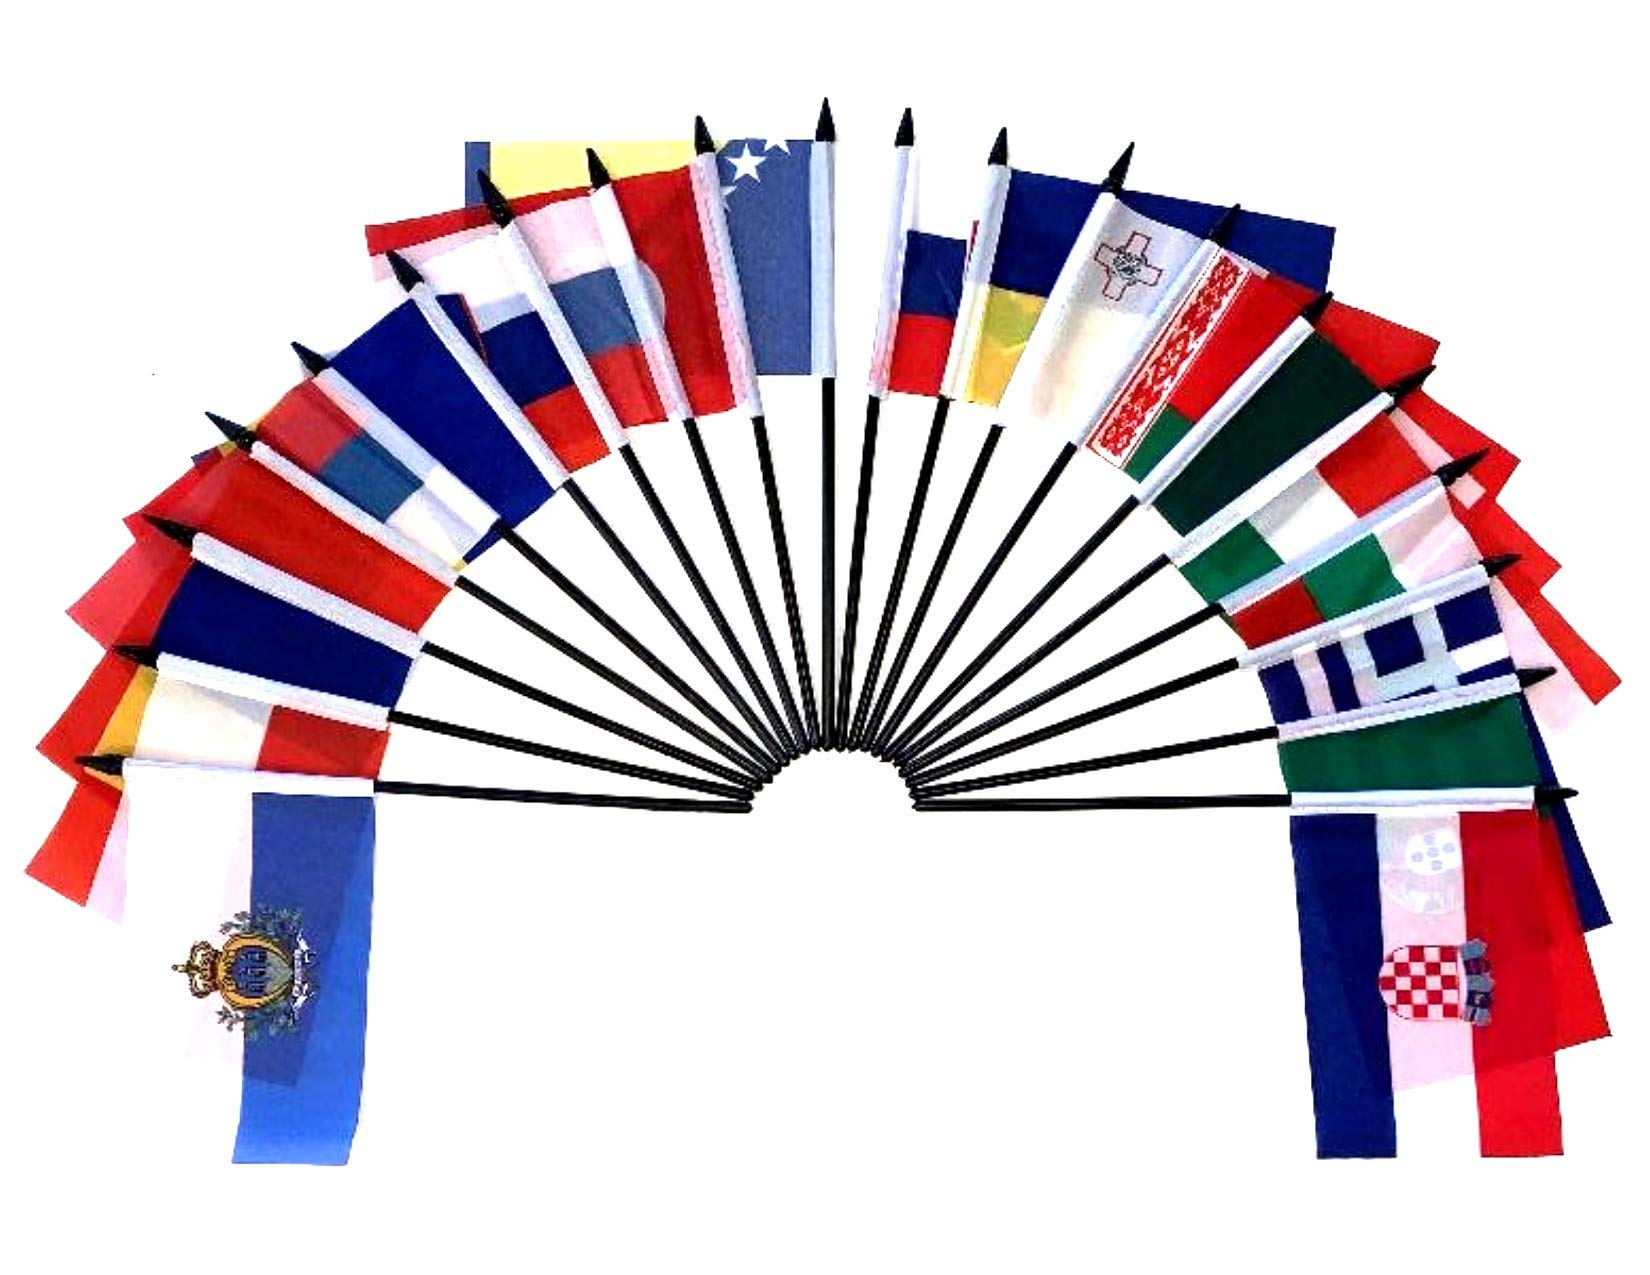 Southeast Europe World Flag SET-20 Polyester 4''x6'' Flags, One Flag for Each Country in Southeast Europe 4x6 Miniature Desk & Table Flags, Small Mini Stick Flags